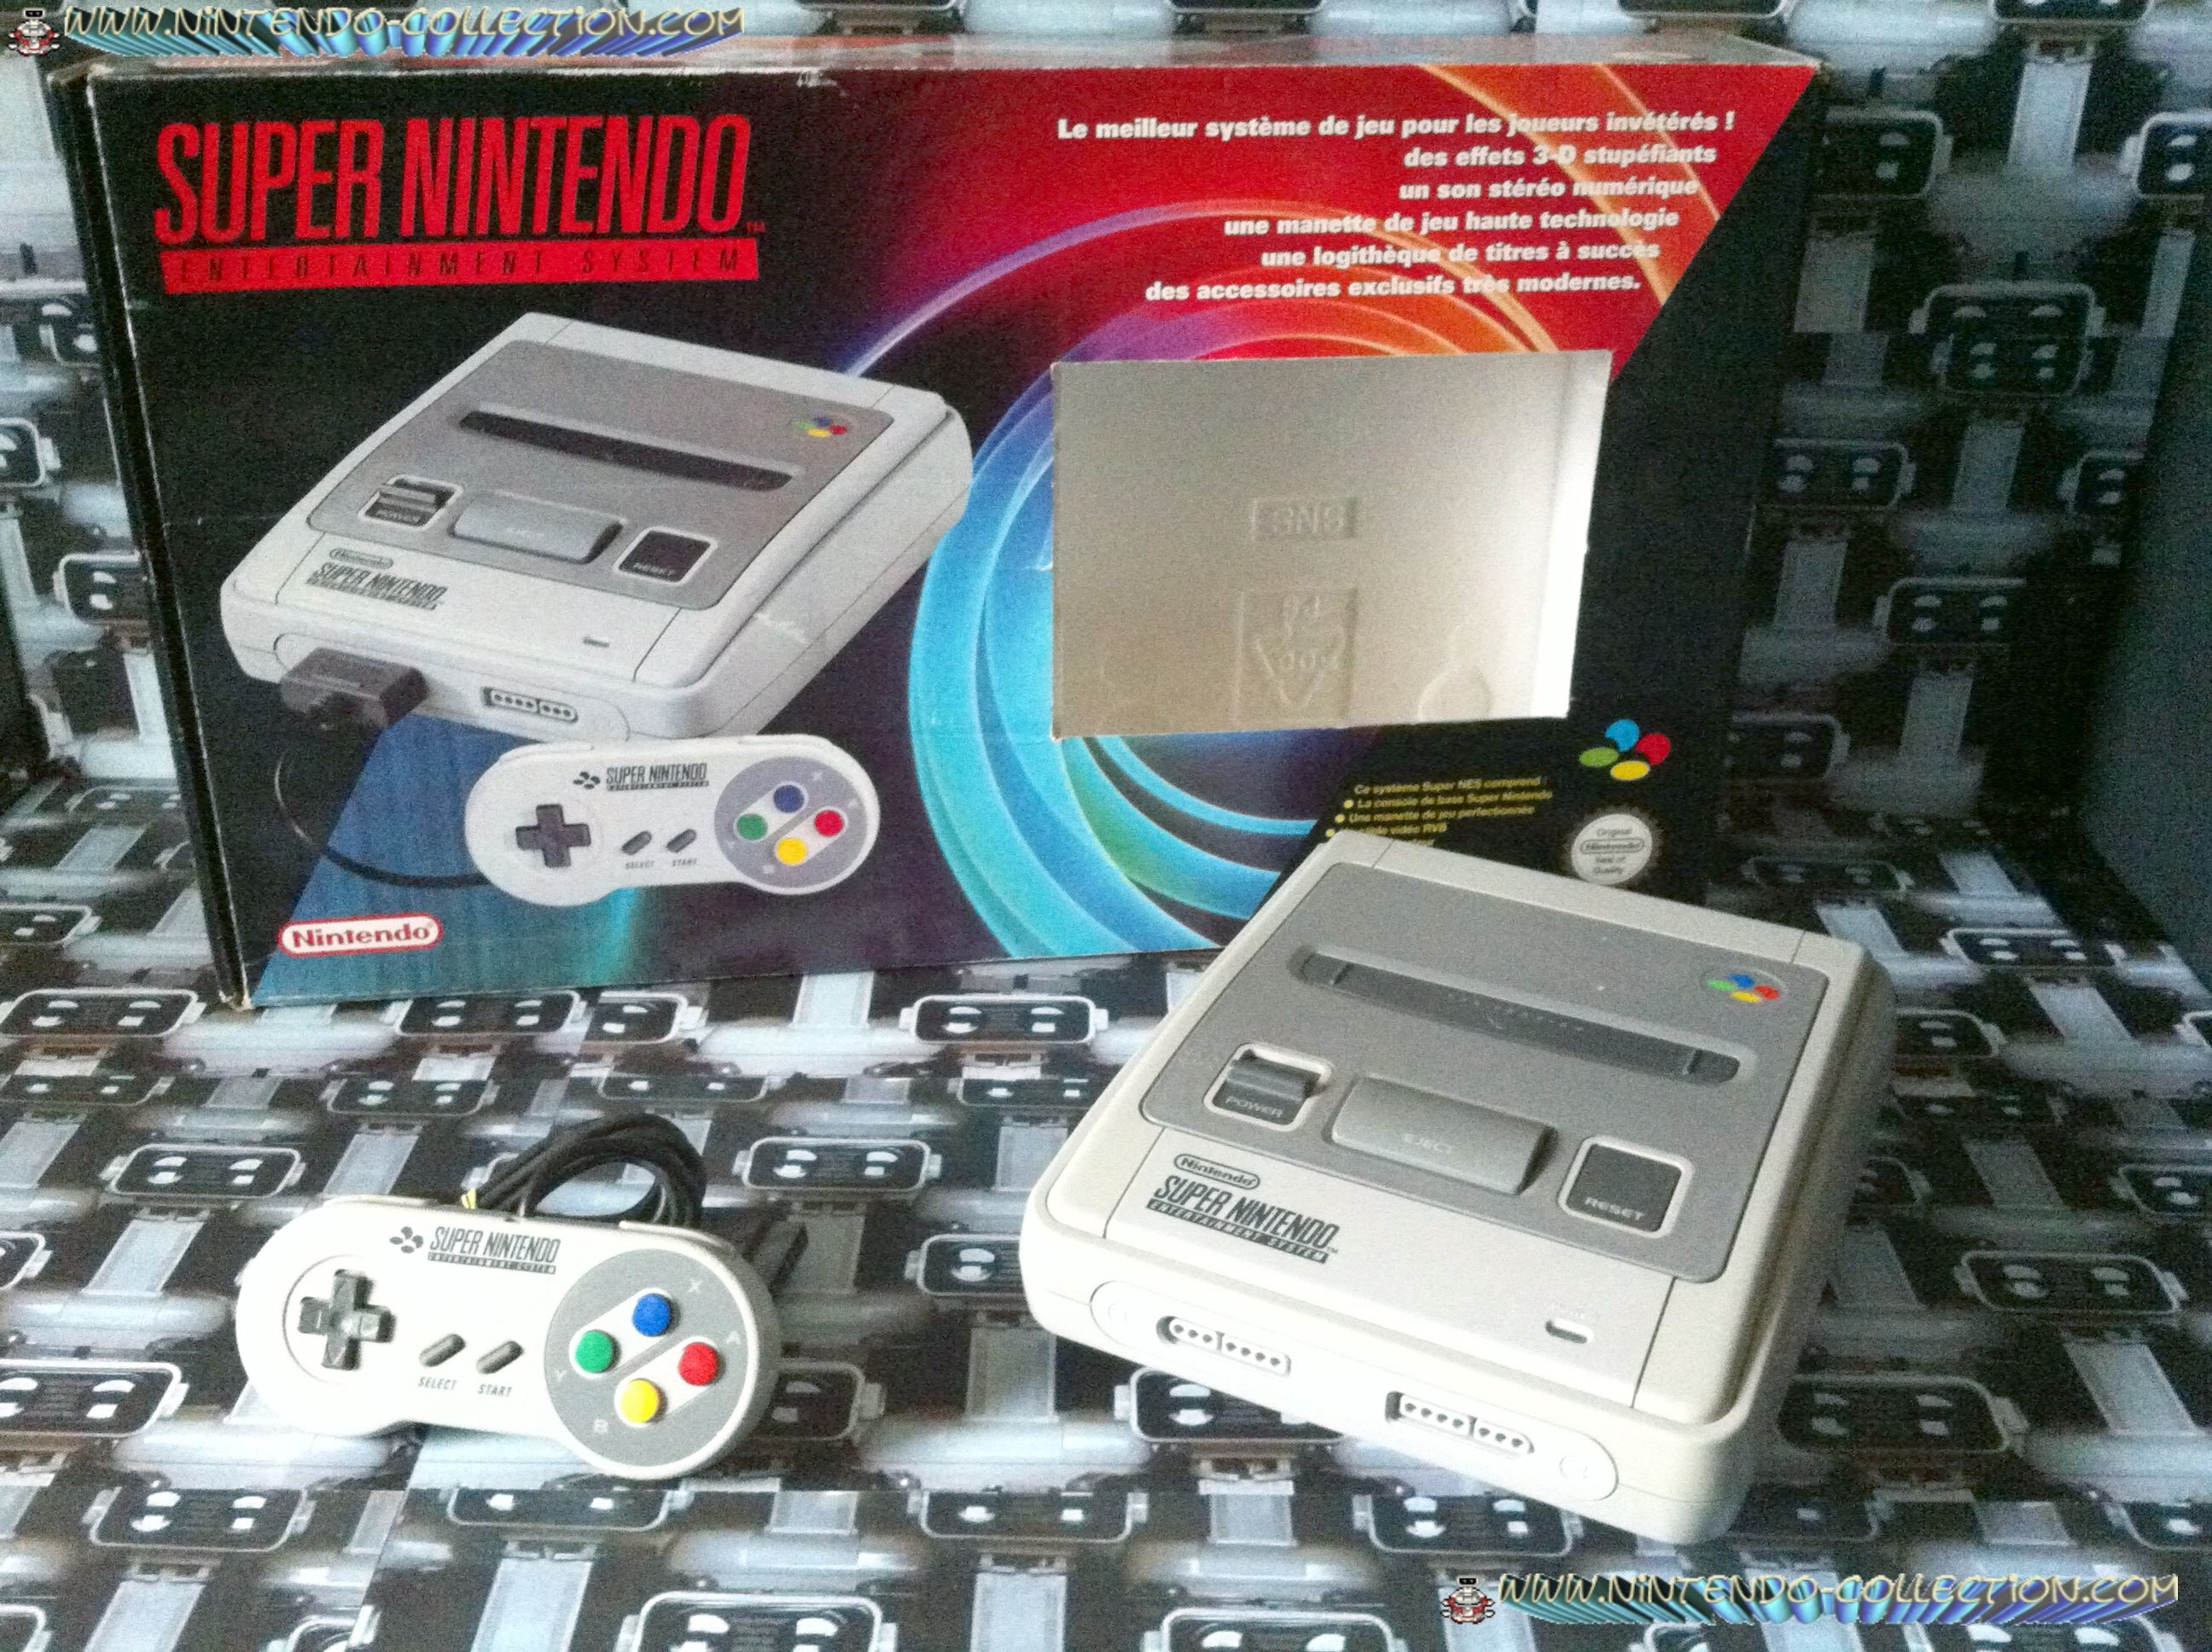 www.nintendo-collection.com - Super Nintendo Super Famicom Super Nes Pack a fenetre windows